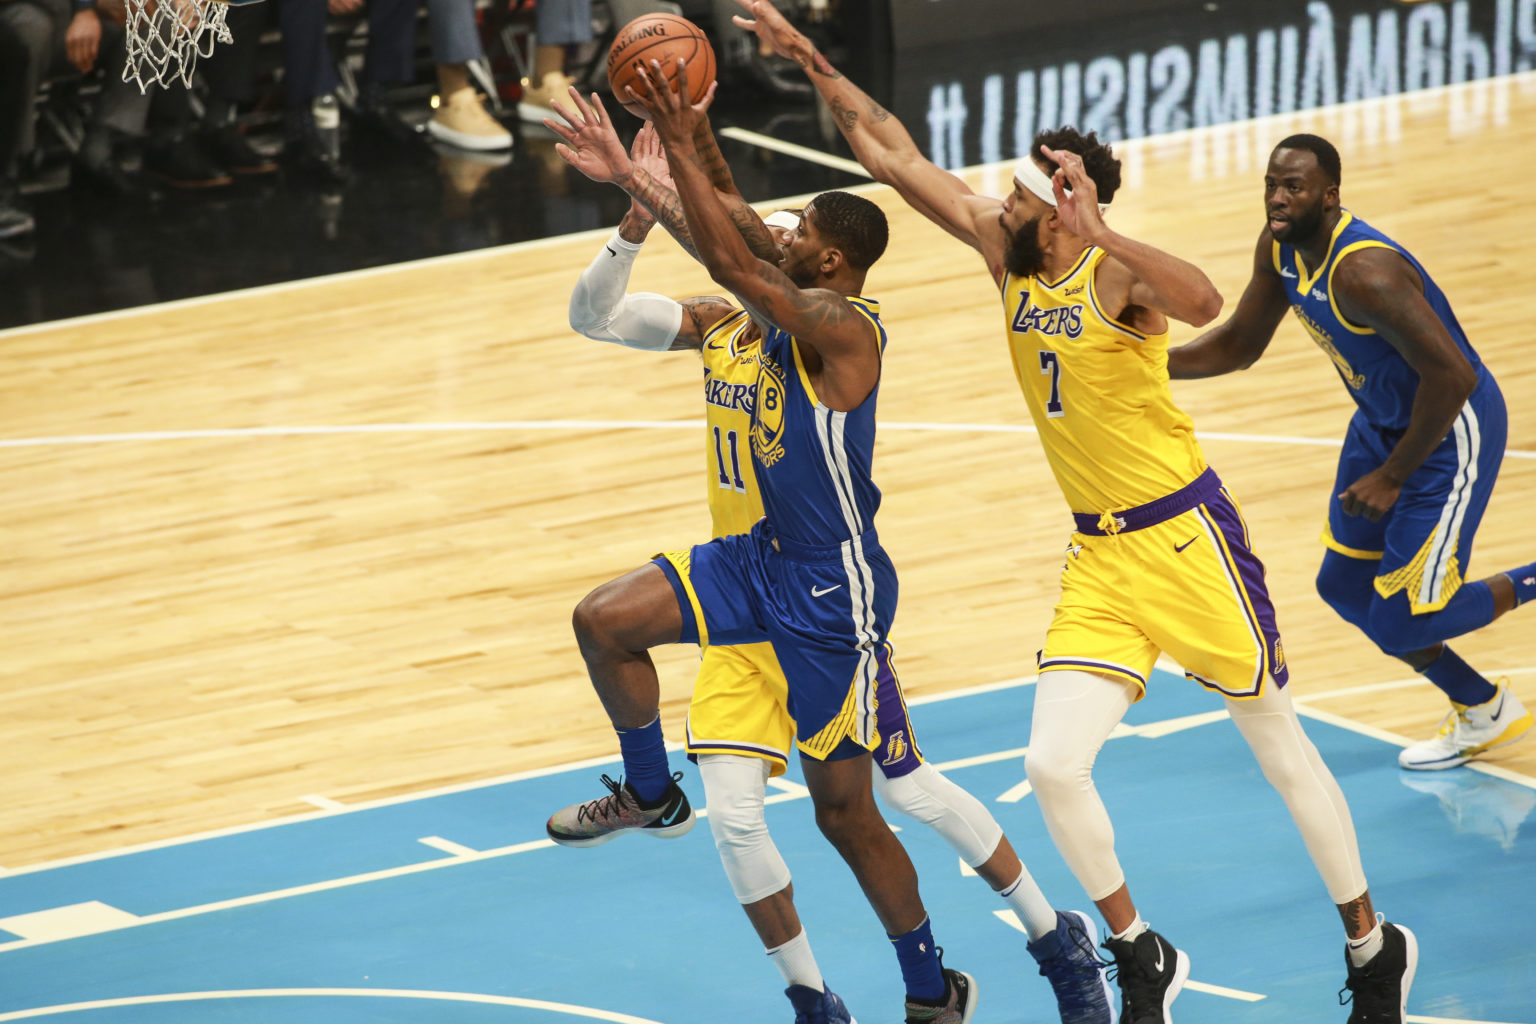 Alfonzo McKinnie (28) of the Golden State Warriors drives towards the basket  against JaVale McGee (7) and Michael Beasley (11) of the Los Angeles Lakers during the first quarter on October 12, 2018 at SAP Center in San Jose, California. (Chris Victorio / Special to S.F. Examiner)